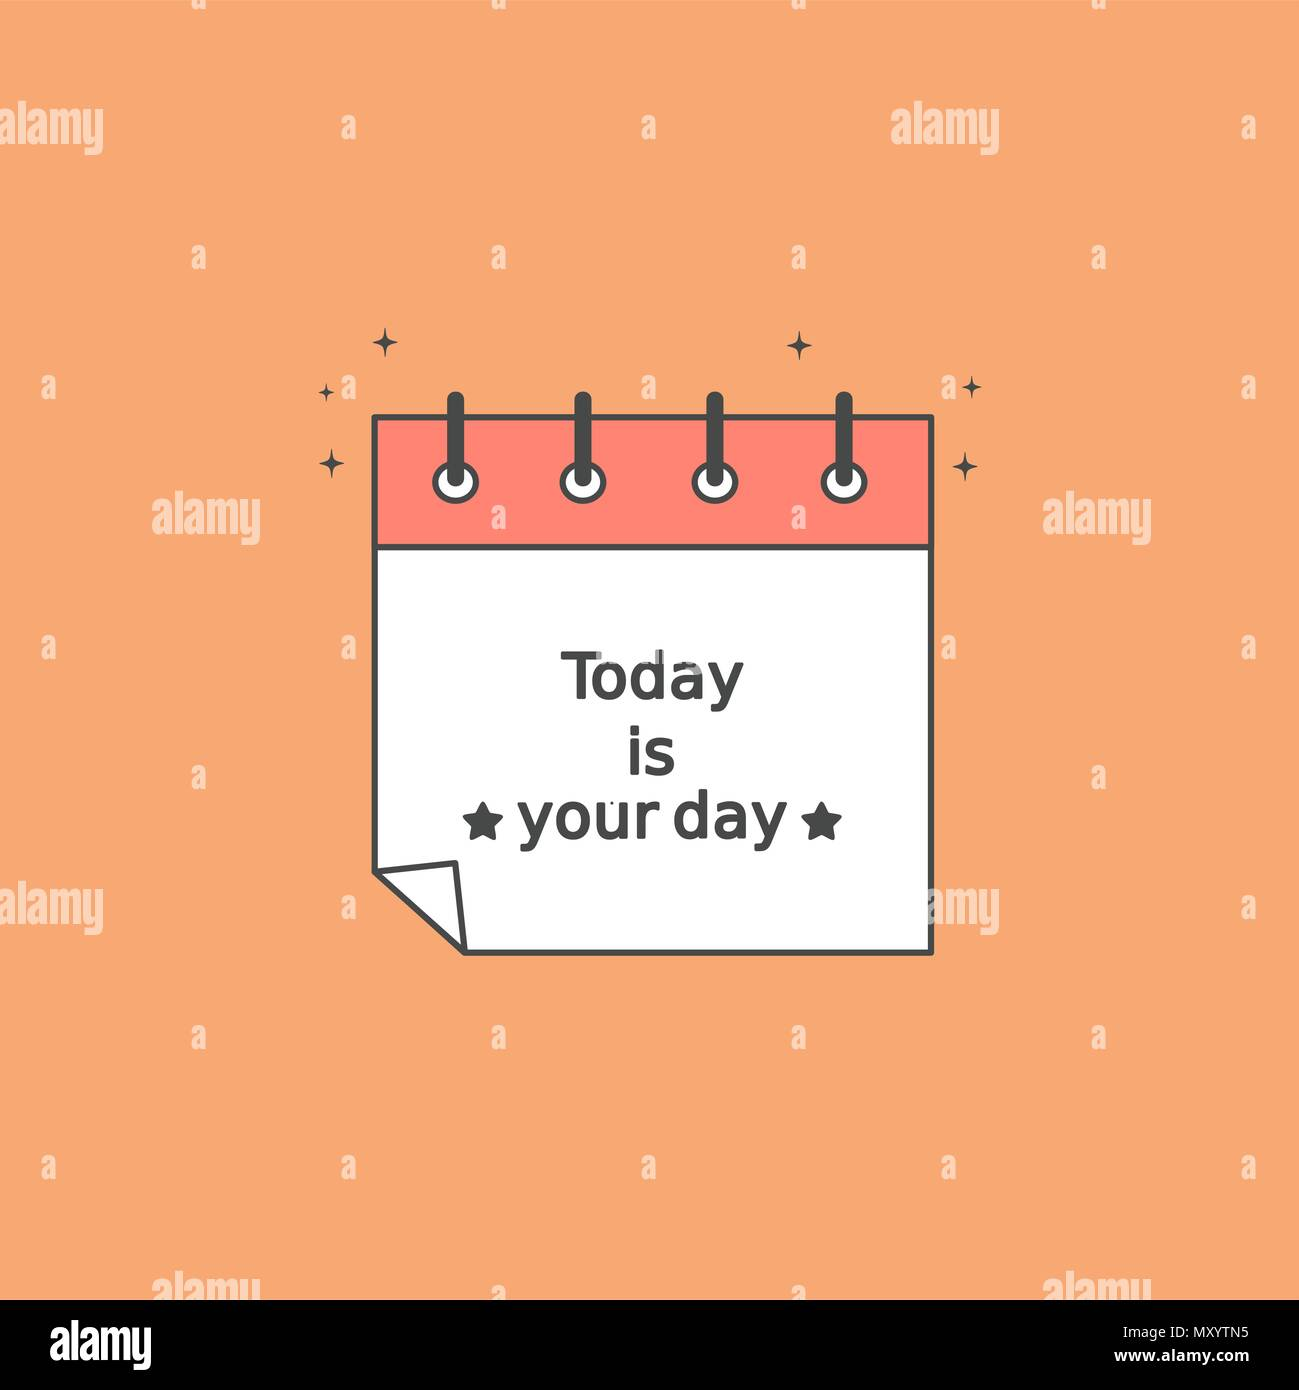 Today Is Your Day Motivational Quote Vector Illustration With